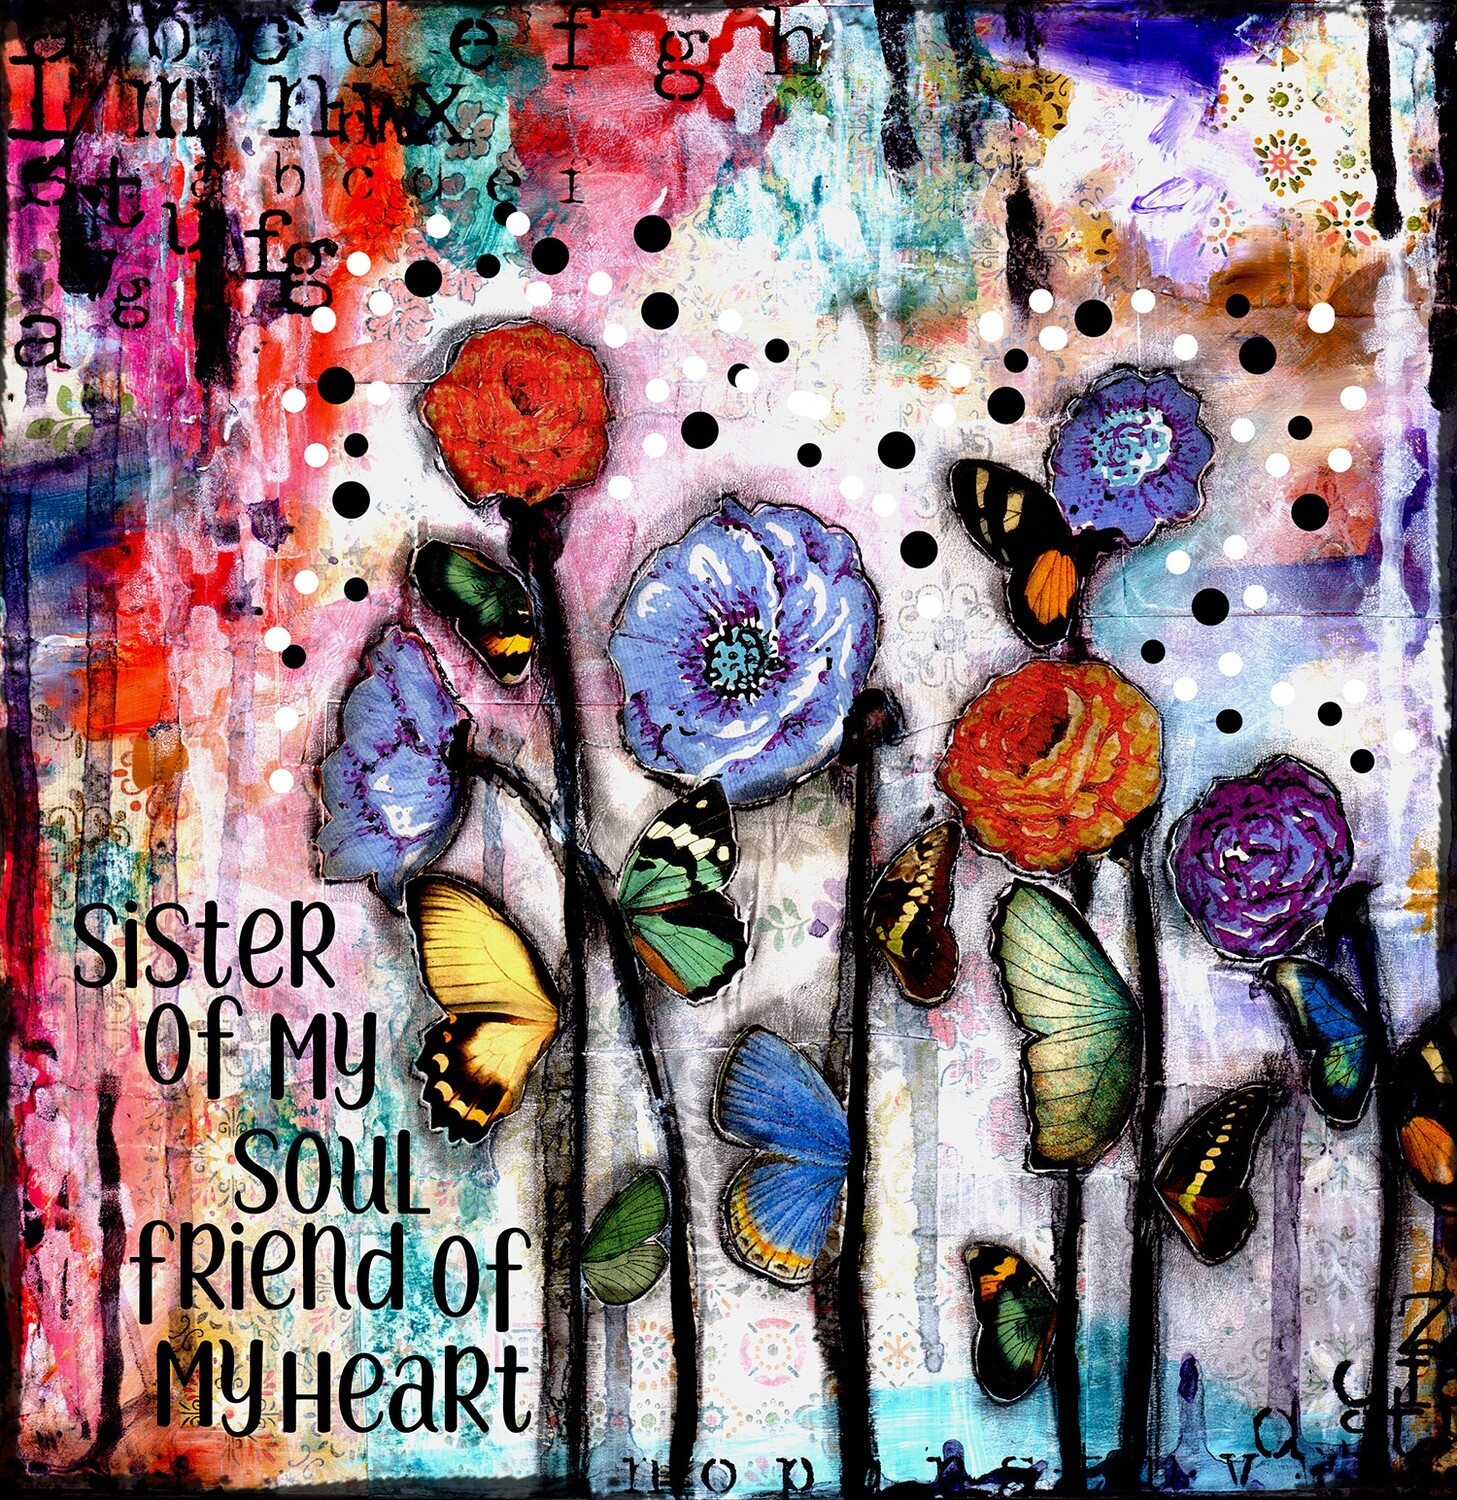 """Sister of my soul friend of my heart"" Print on Wood 4x4 Overstock"